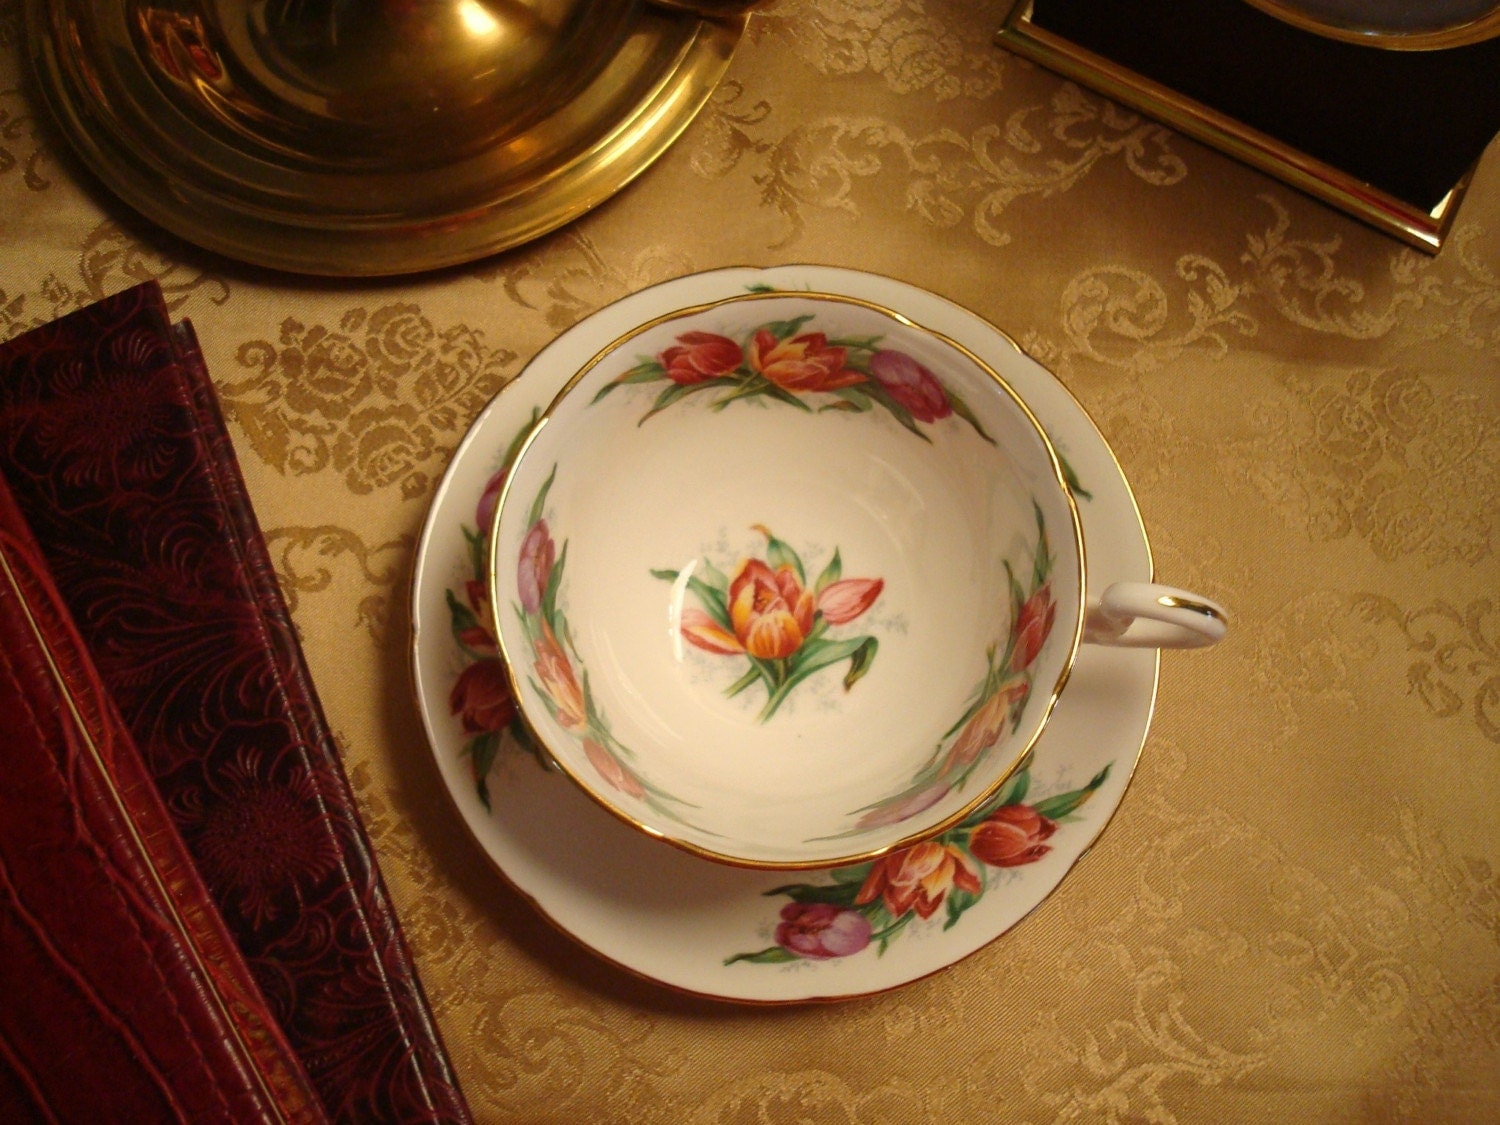 Tea Time Necessity....The Kitty Bennet Teacup and Saucer...Beautiful Vintage Royal Grafton Bone China